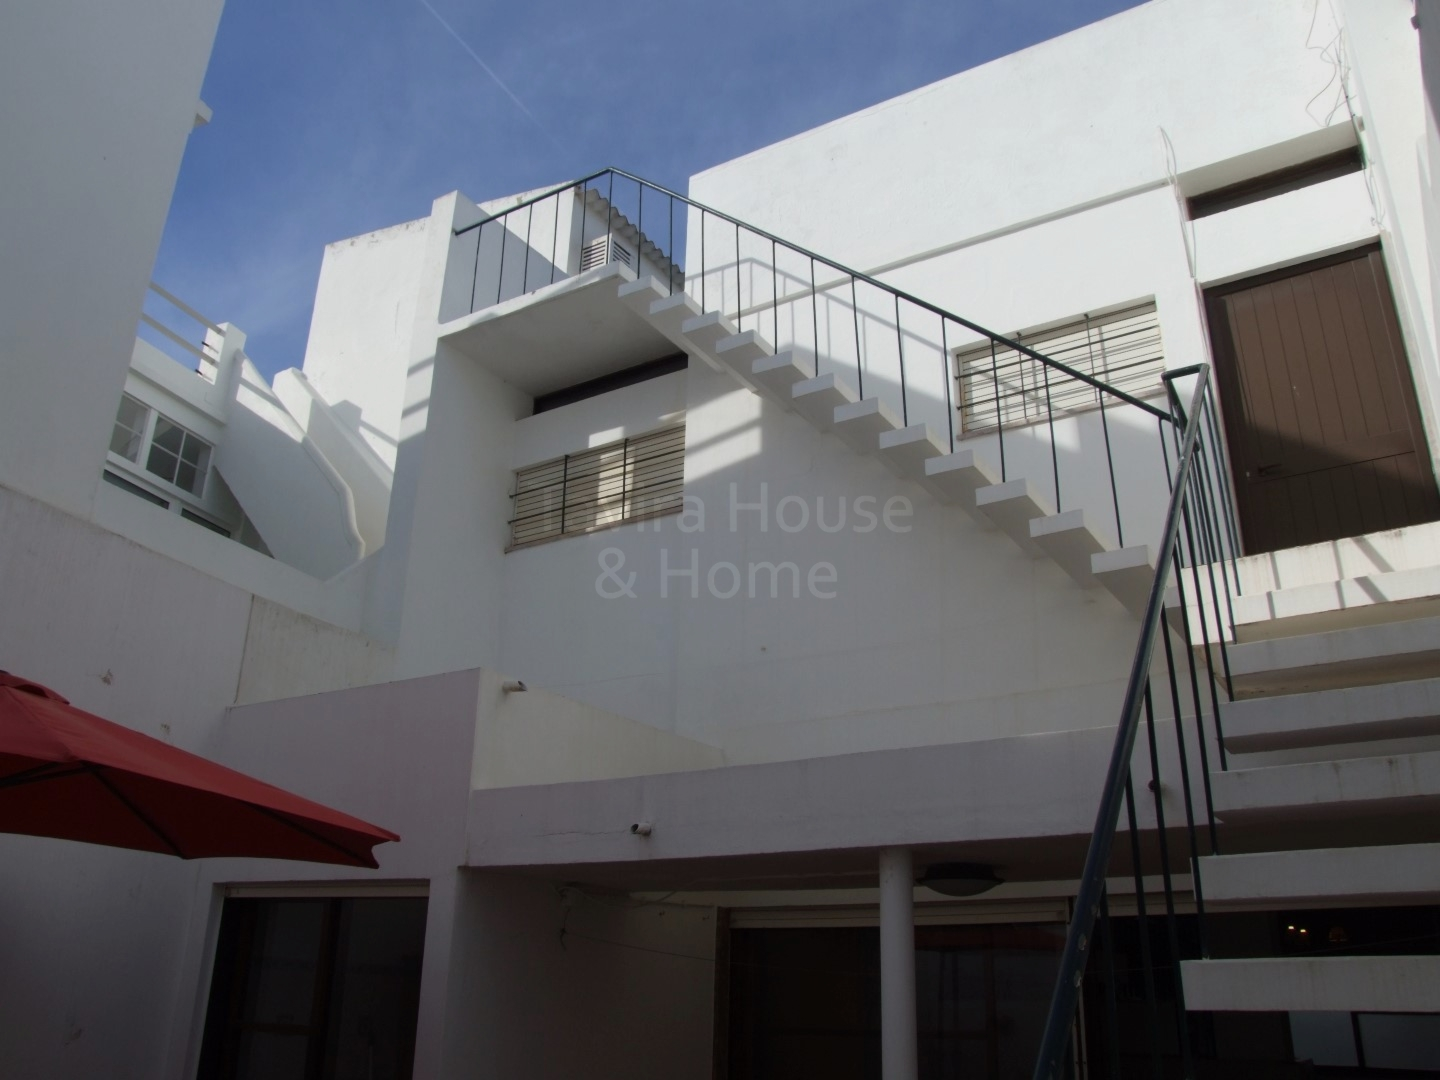 V0574 - 4 Bedroom Townhouse with Roof Terrace  Central Tavira  Tavira  Portugal